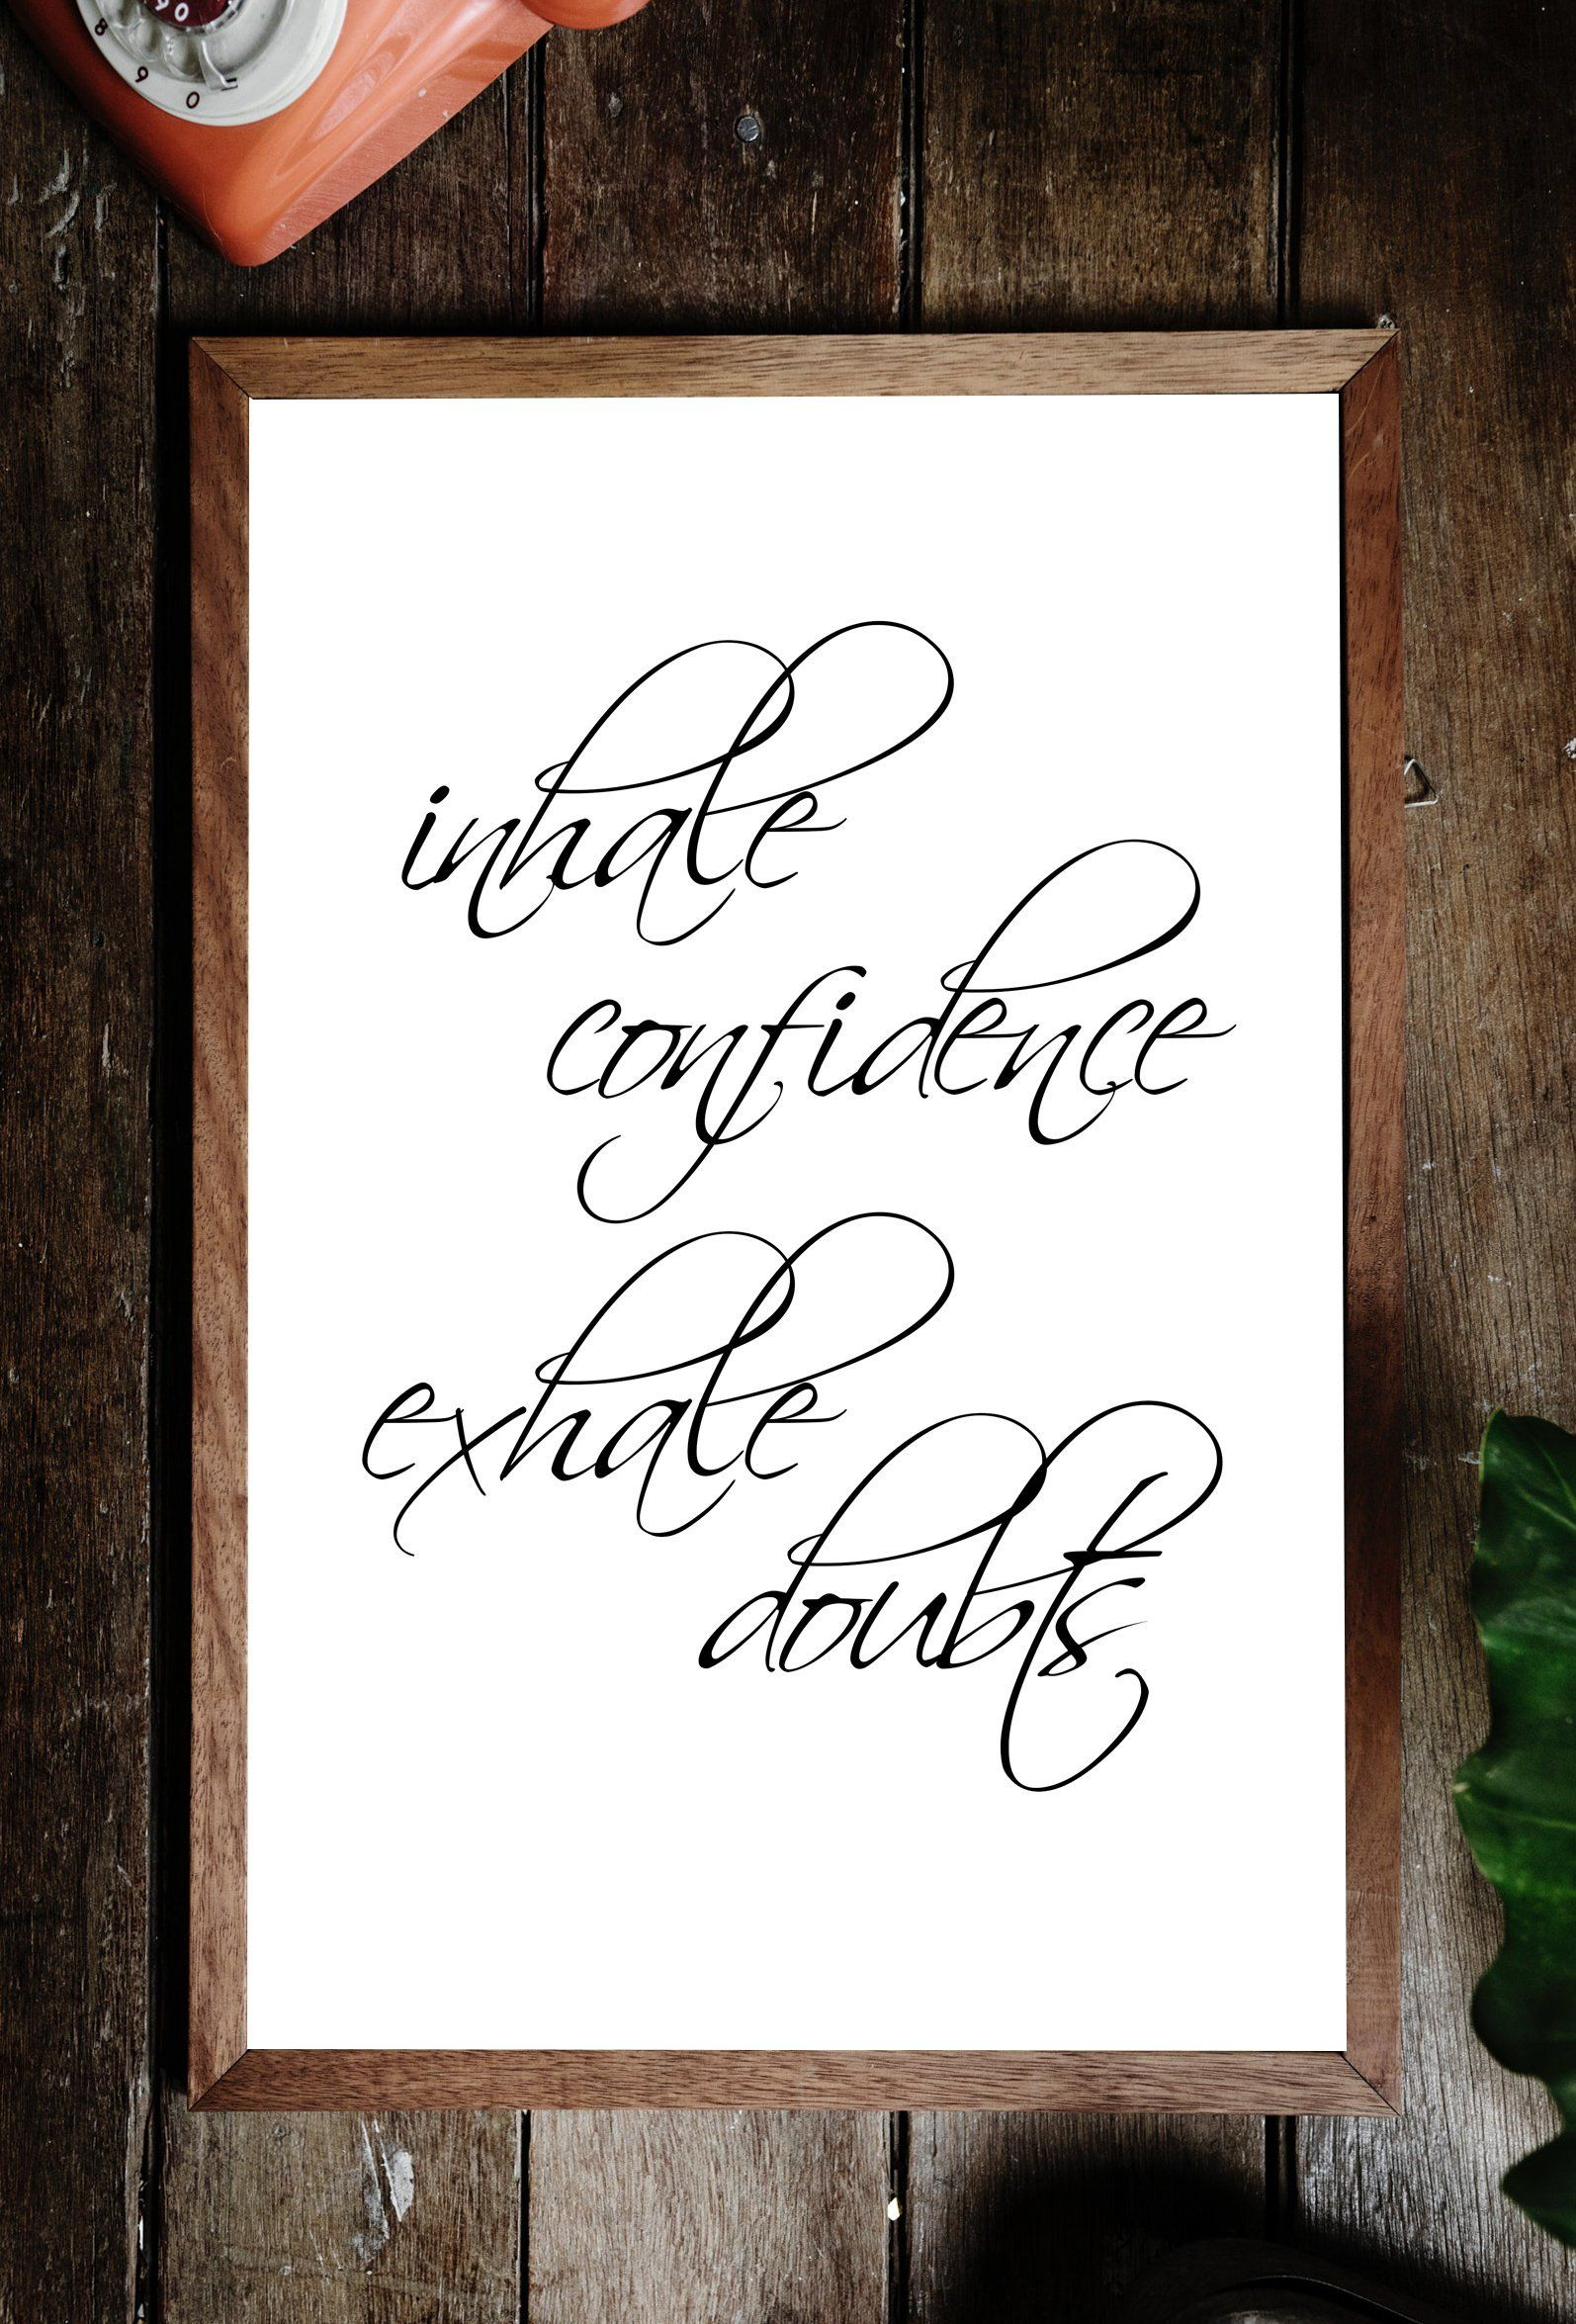 Printable Inhale Confidence Exhale Doubts wall art,Printable quotes,Zen Decor,Confidence quotes,Inhale Exhale,Mindfulness gift,Buddha quotes